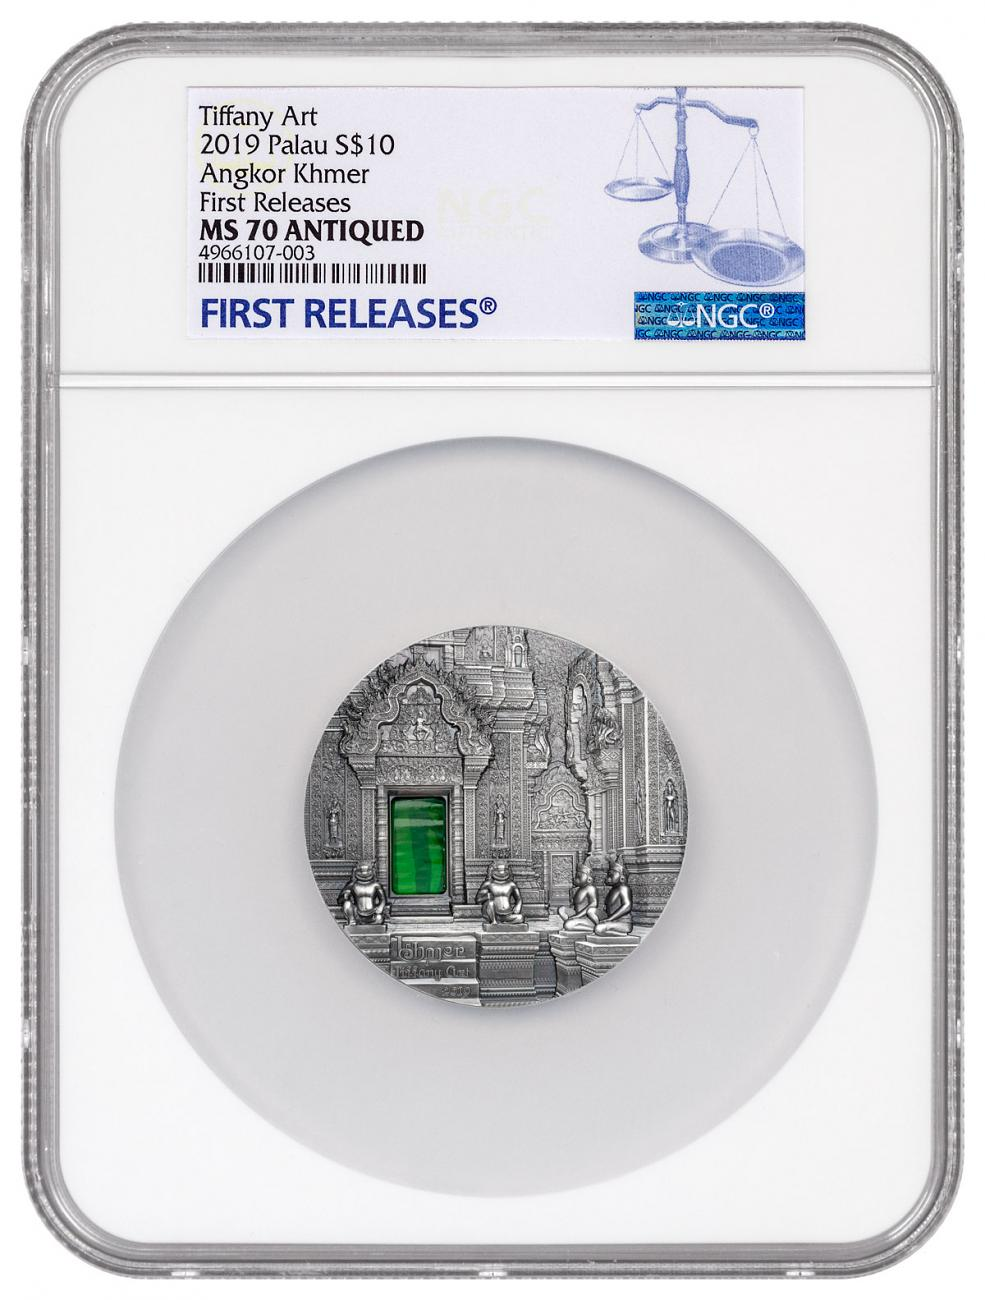 2019 Palau Tiffany Art - Khmer Ultra High Relief 2 oz Silver Antiqued $10 Coin NGC MS70 FR